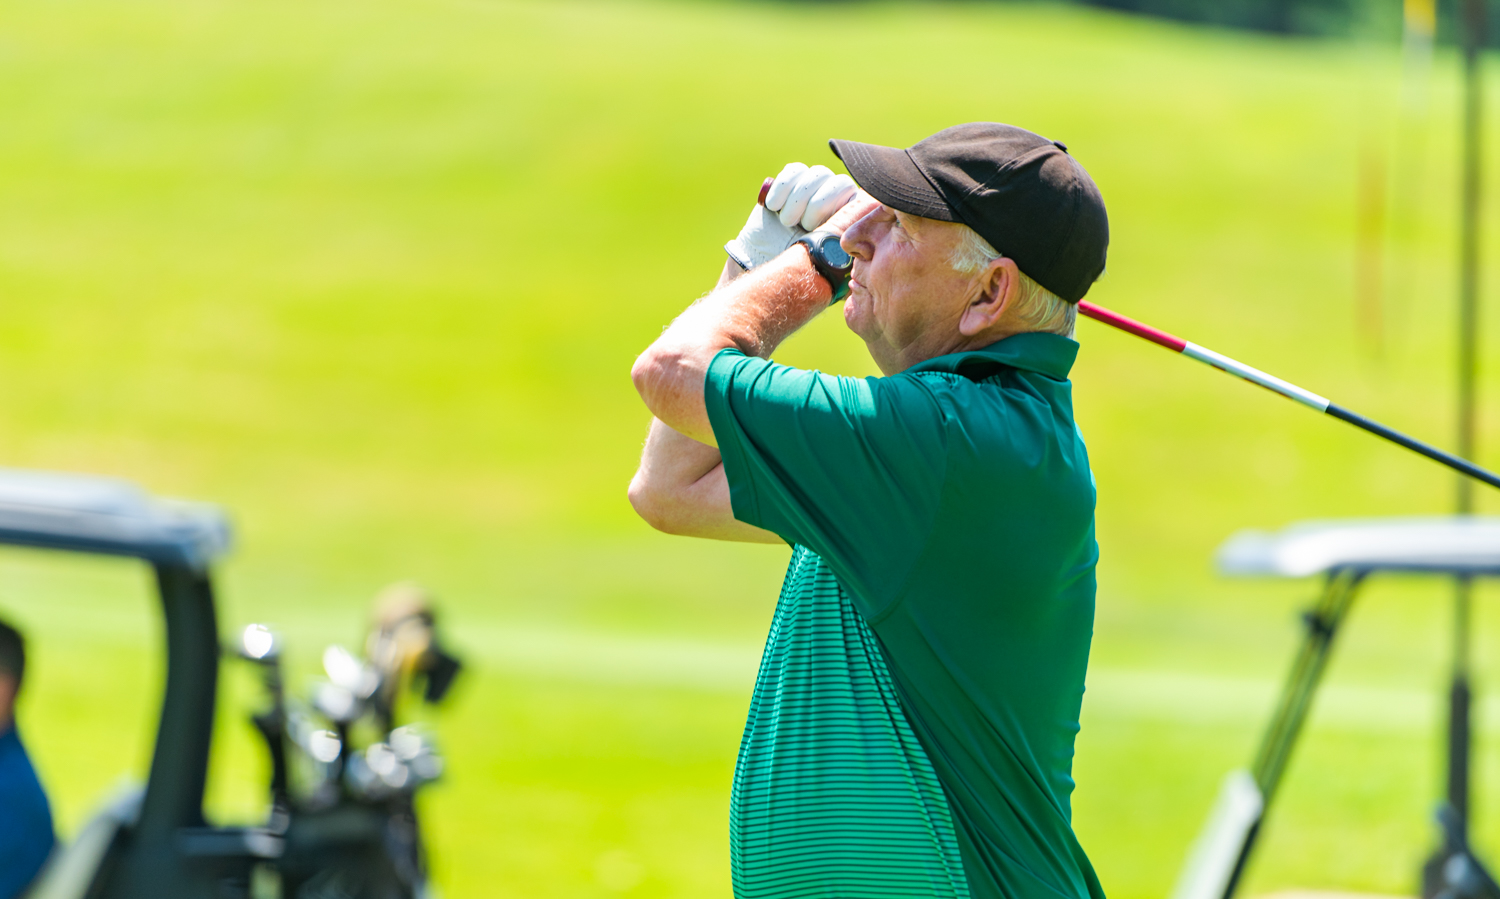 T1DTTN_Golf Tournament 2019_Web-32.jpg